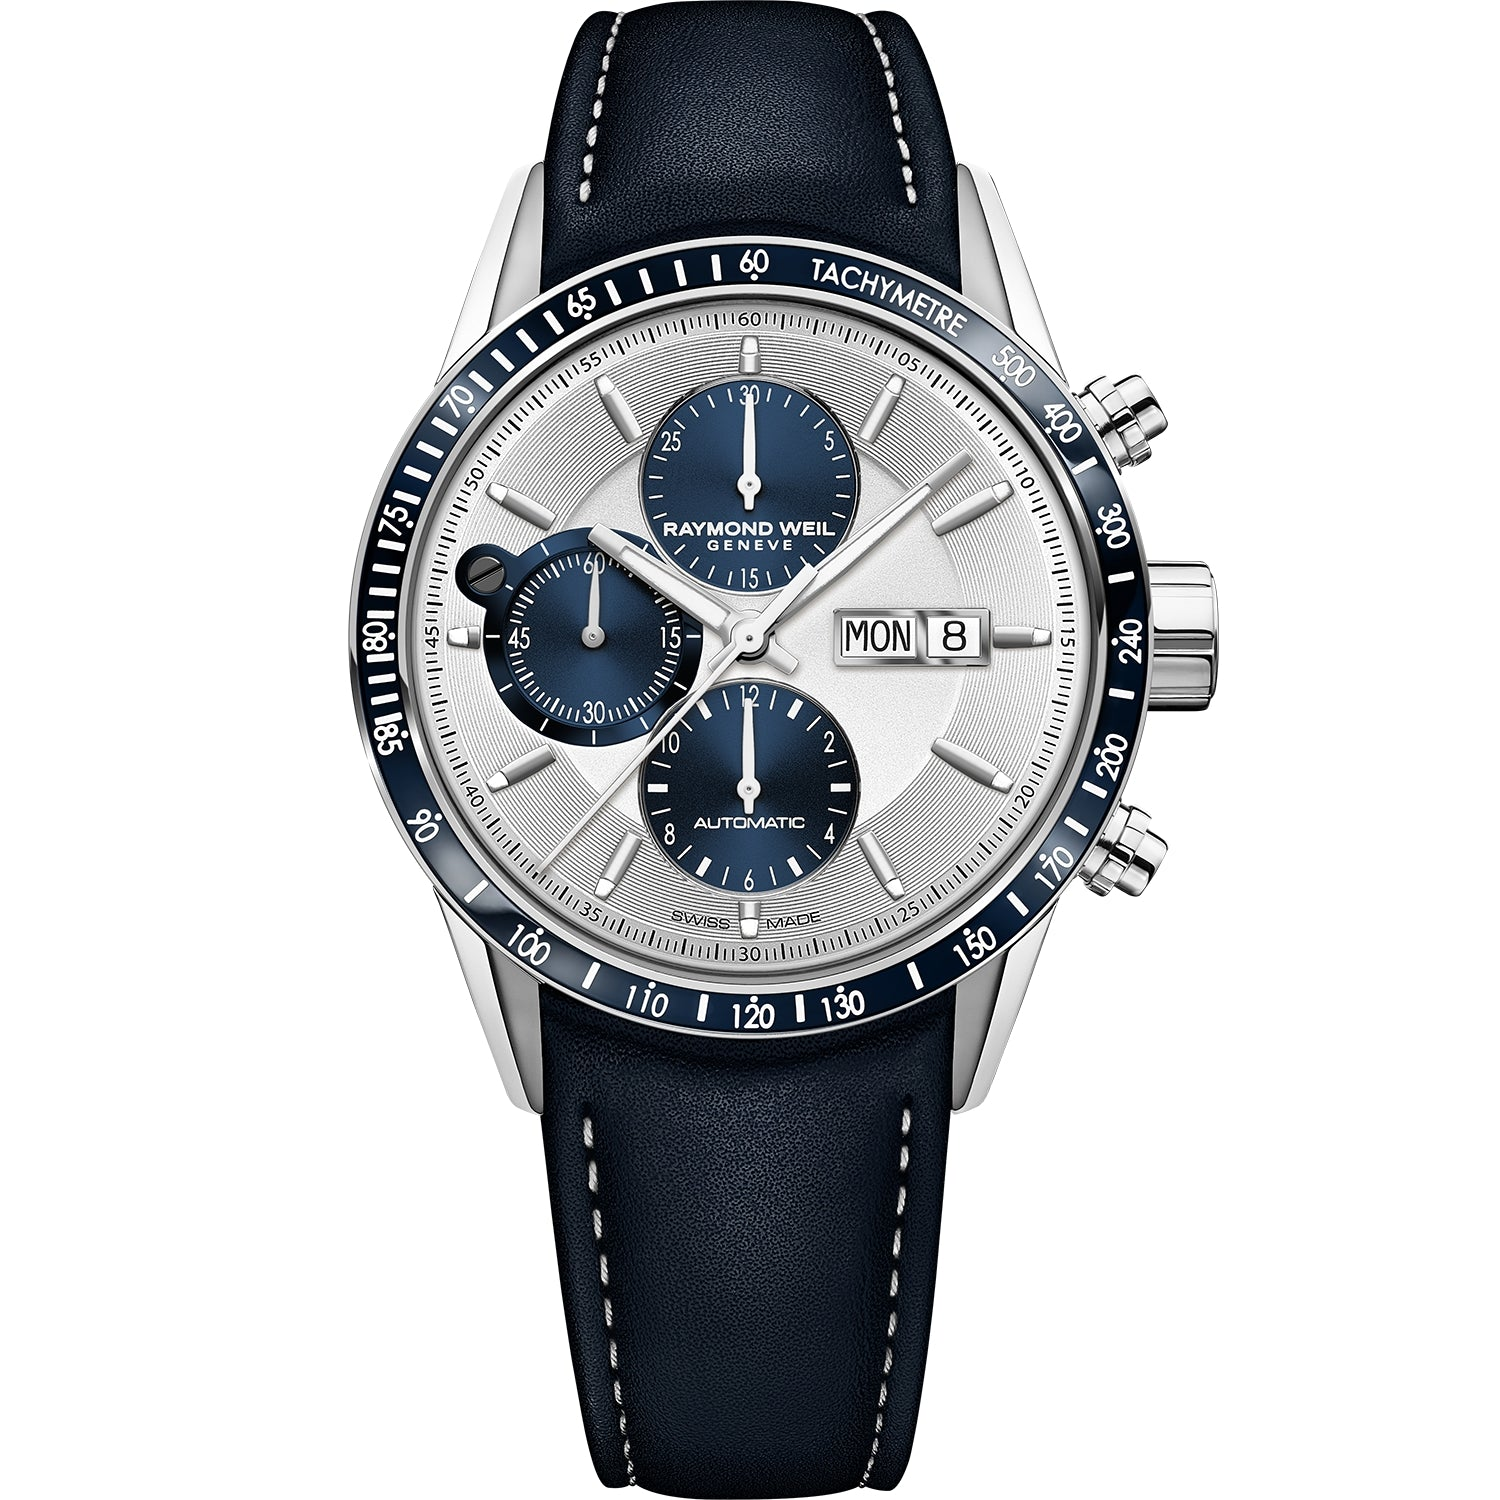 Freelancer Men's Automatic Chronograph Blue Leather Watch 7731-SC3-65521